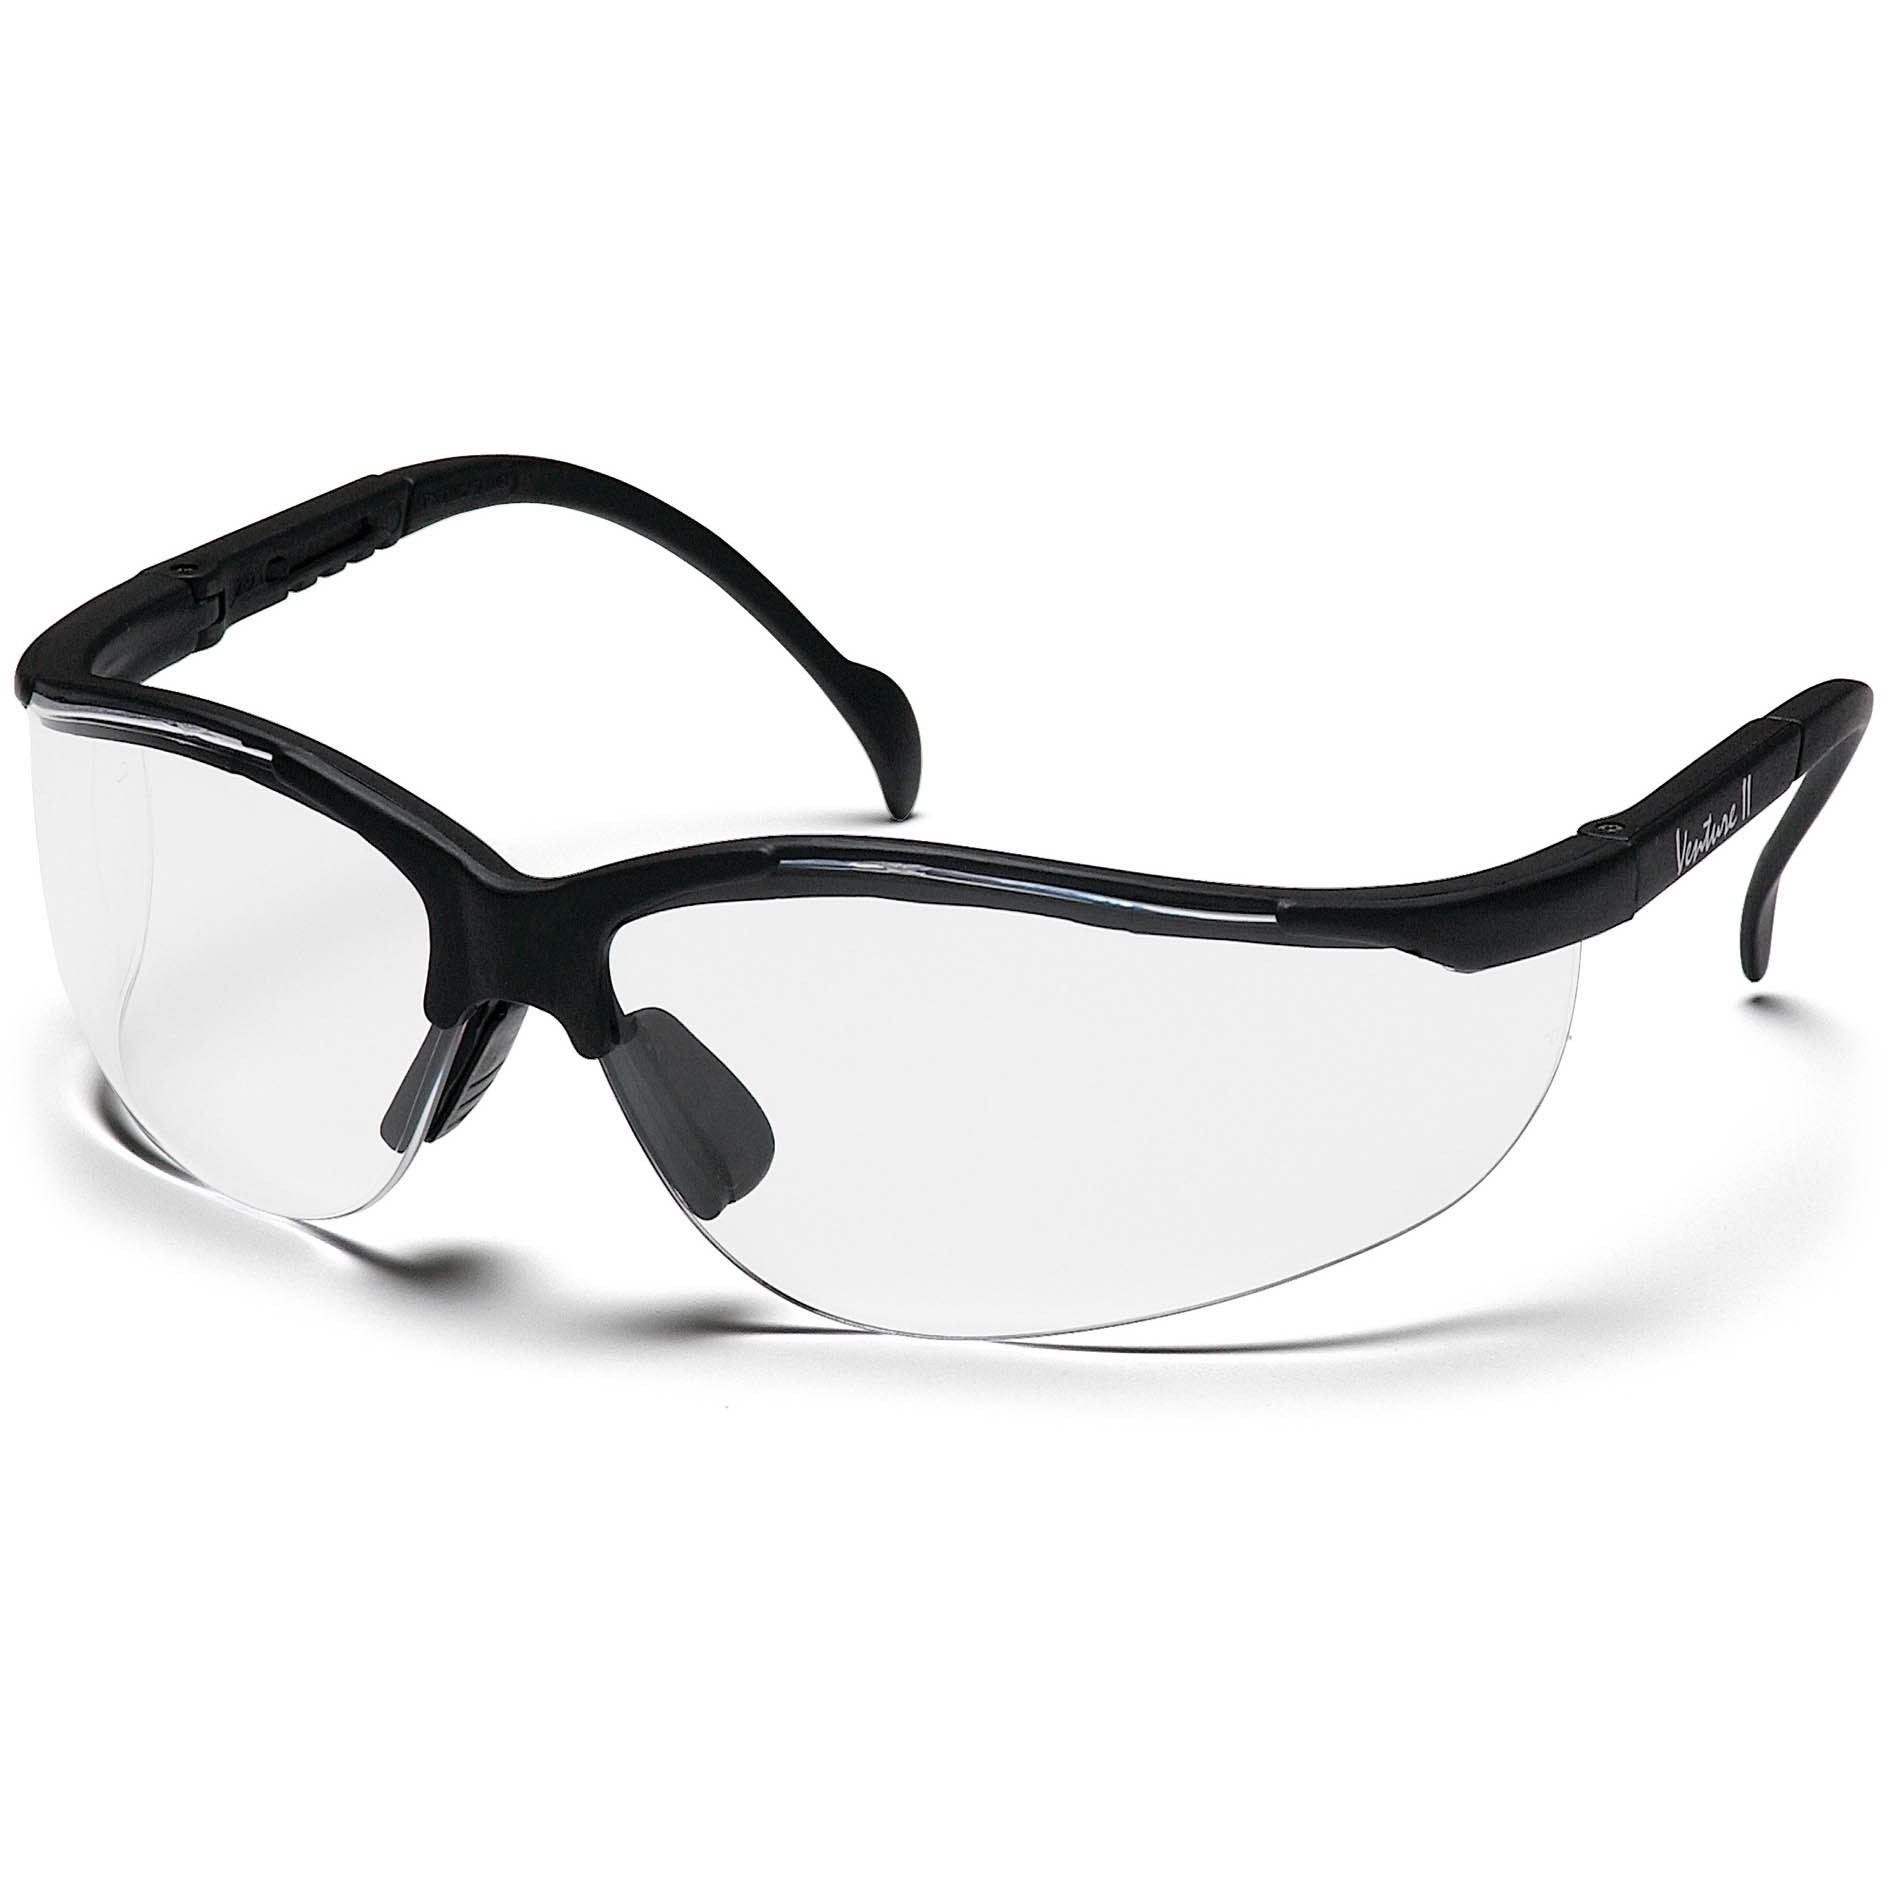 Black Frame Glasses Clear Lens : Pyramex Venture II Safety Glasses - Black Frame - Clear ...